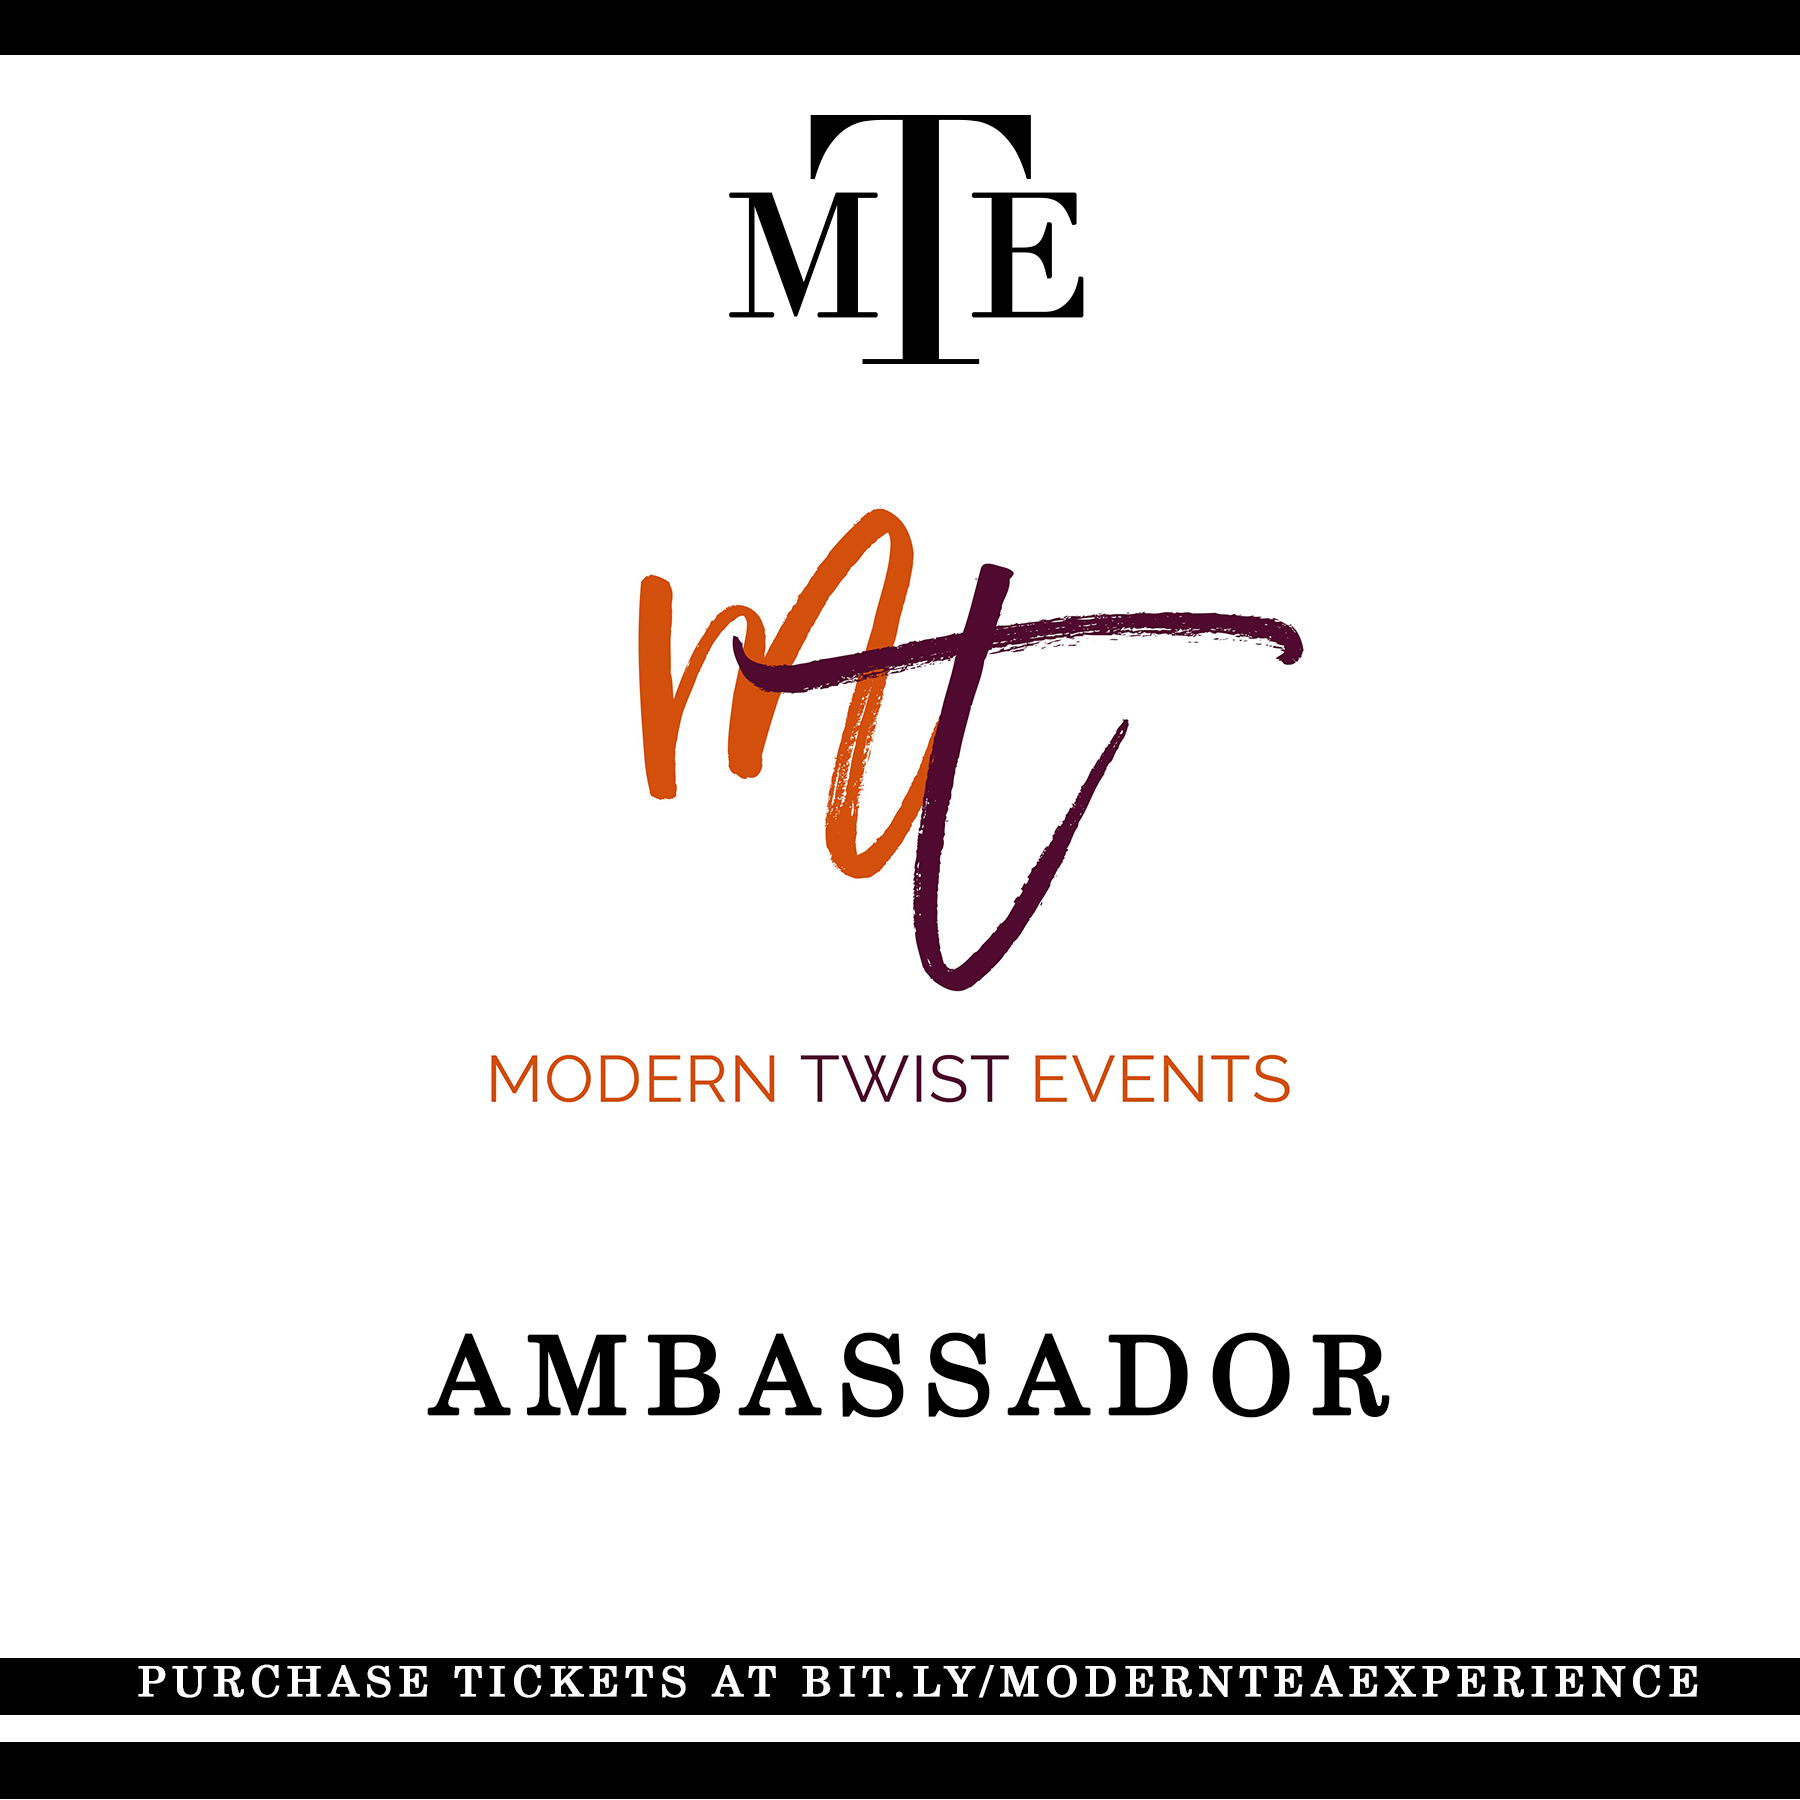 MTE _ Sponsor Levels _ Modern Twist Events (1).jpg